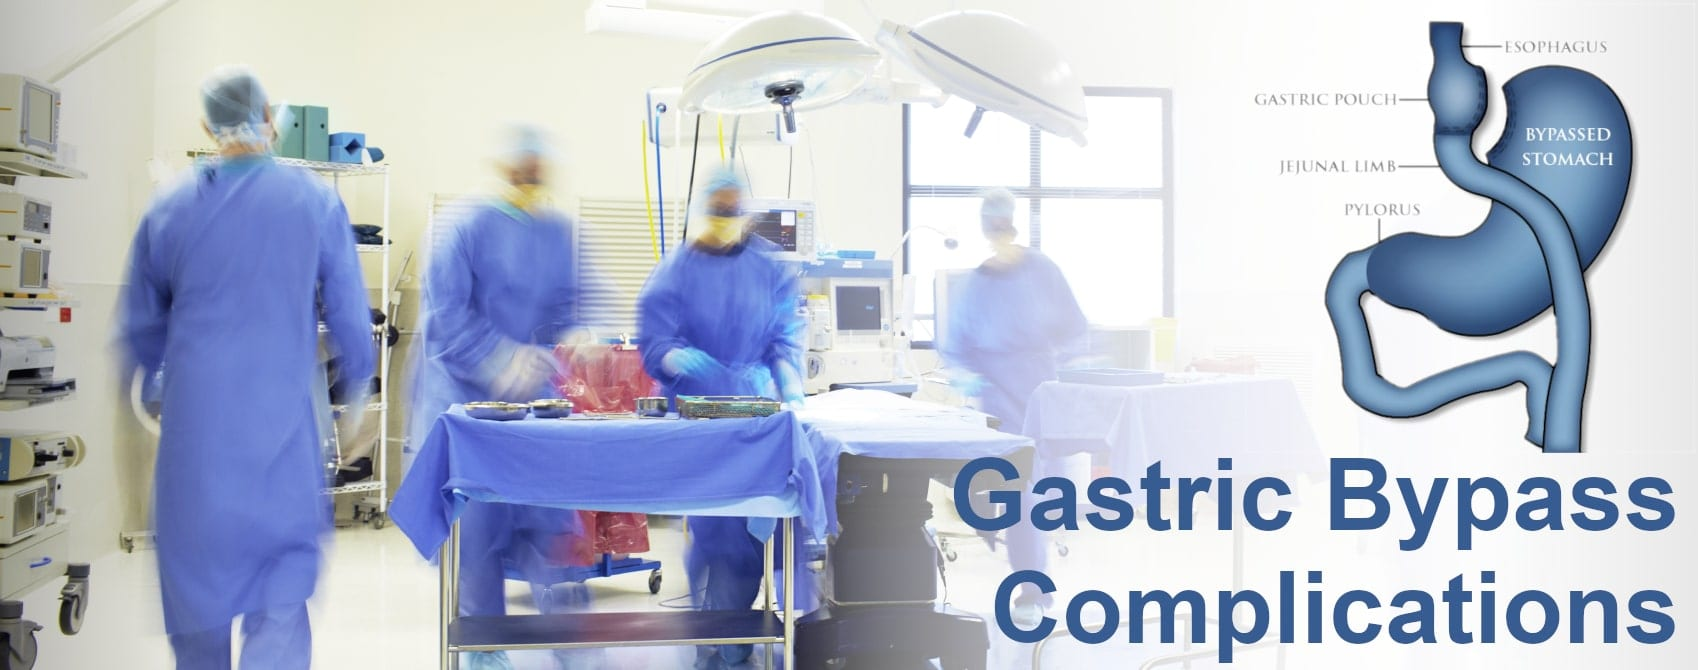 RNY Gastric Bypass Complications, Risks, and Side Effects - Surgery Room